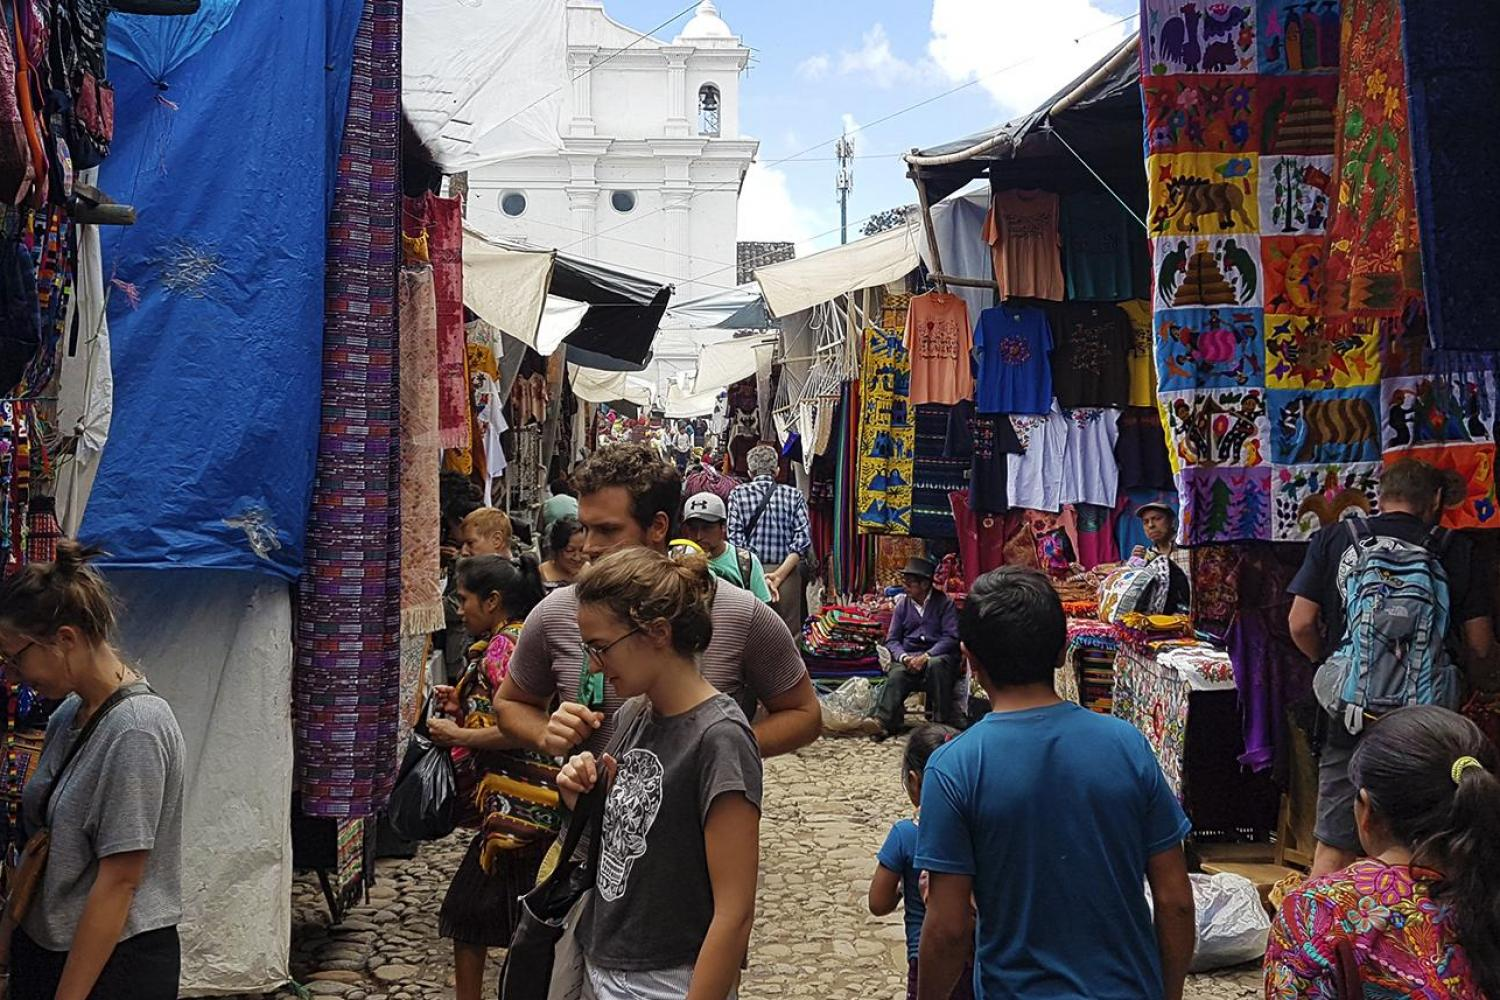 Chichicastenango Market & Lake Atitlan 2 day / 1 night Tour From Antigua Guatemala